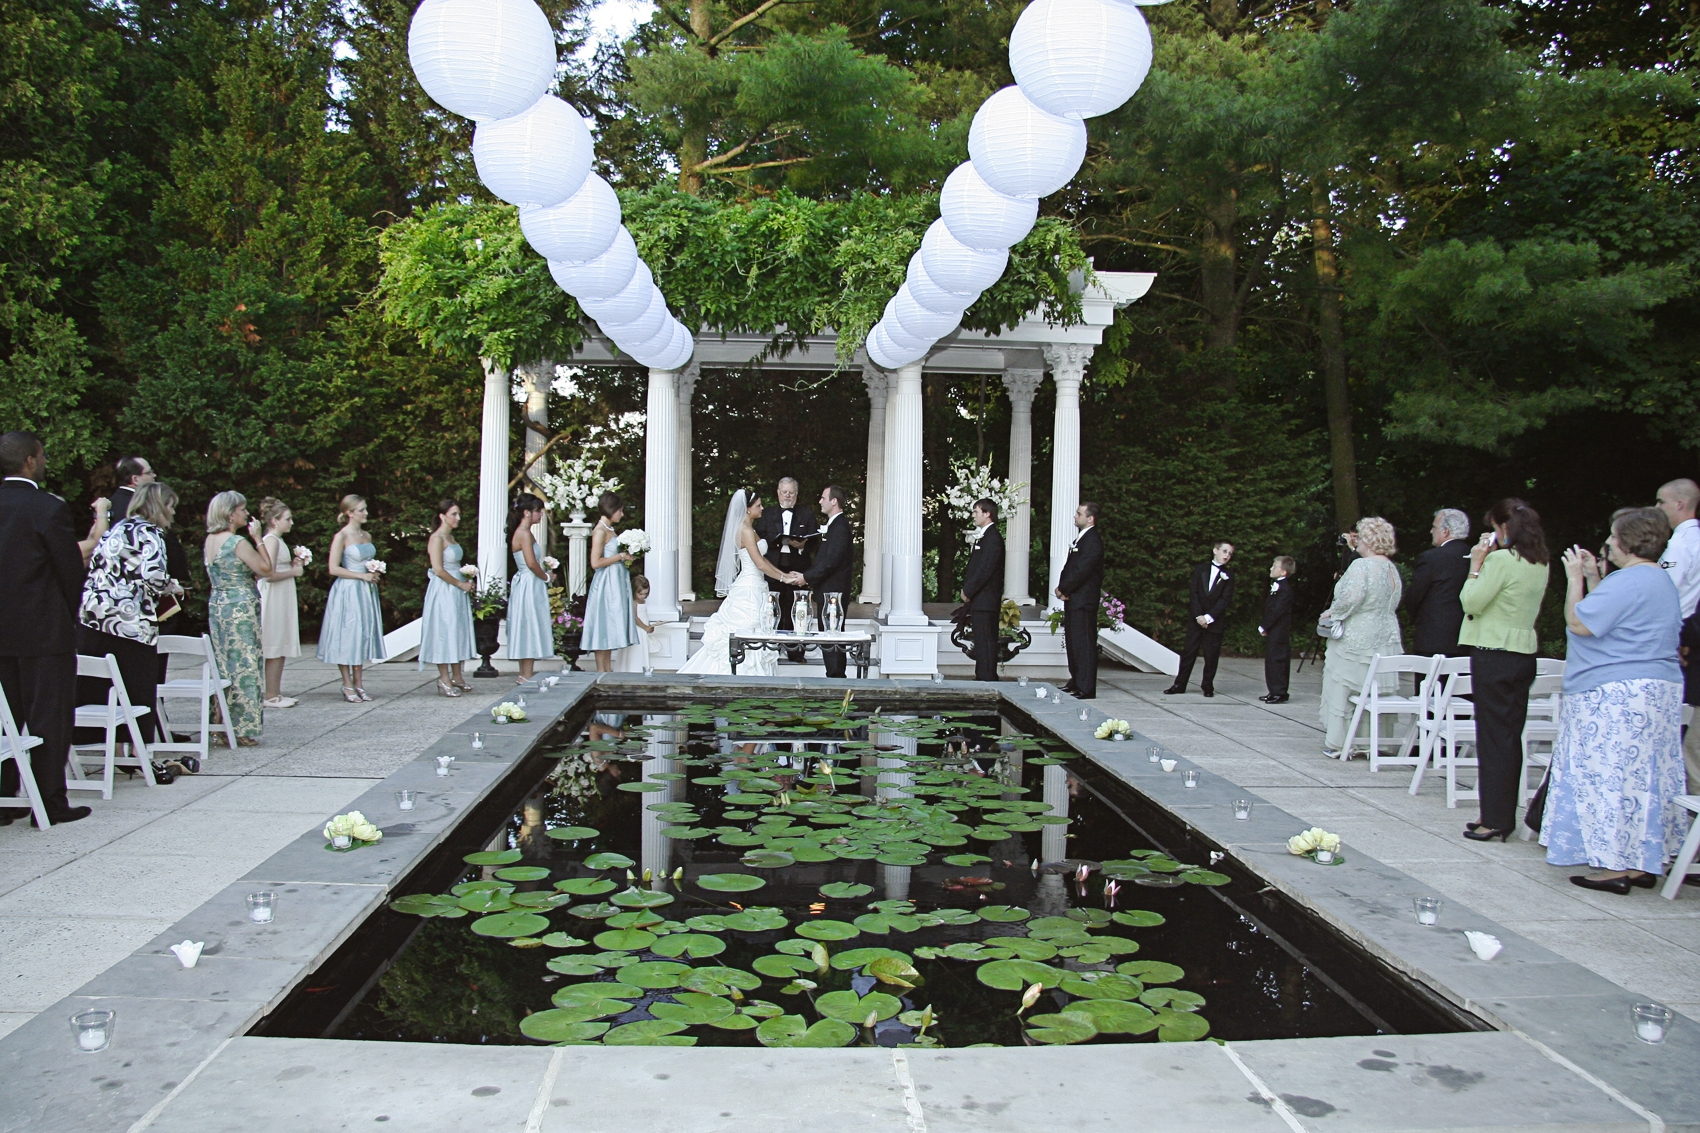 Outdoor Wedding Vendors Outdoor Wedding Ceremony Garden Lily Pads Original